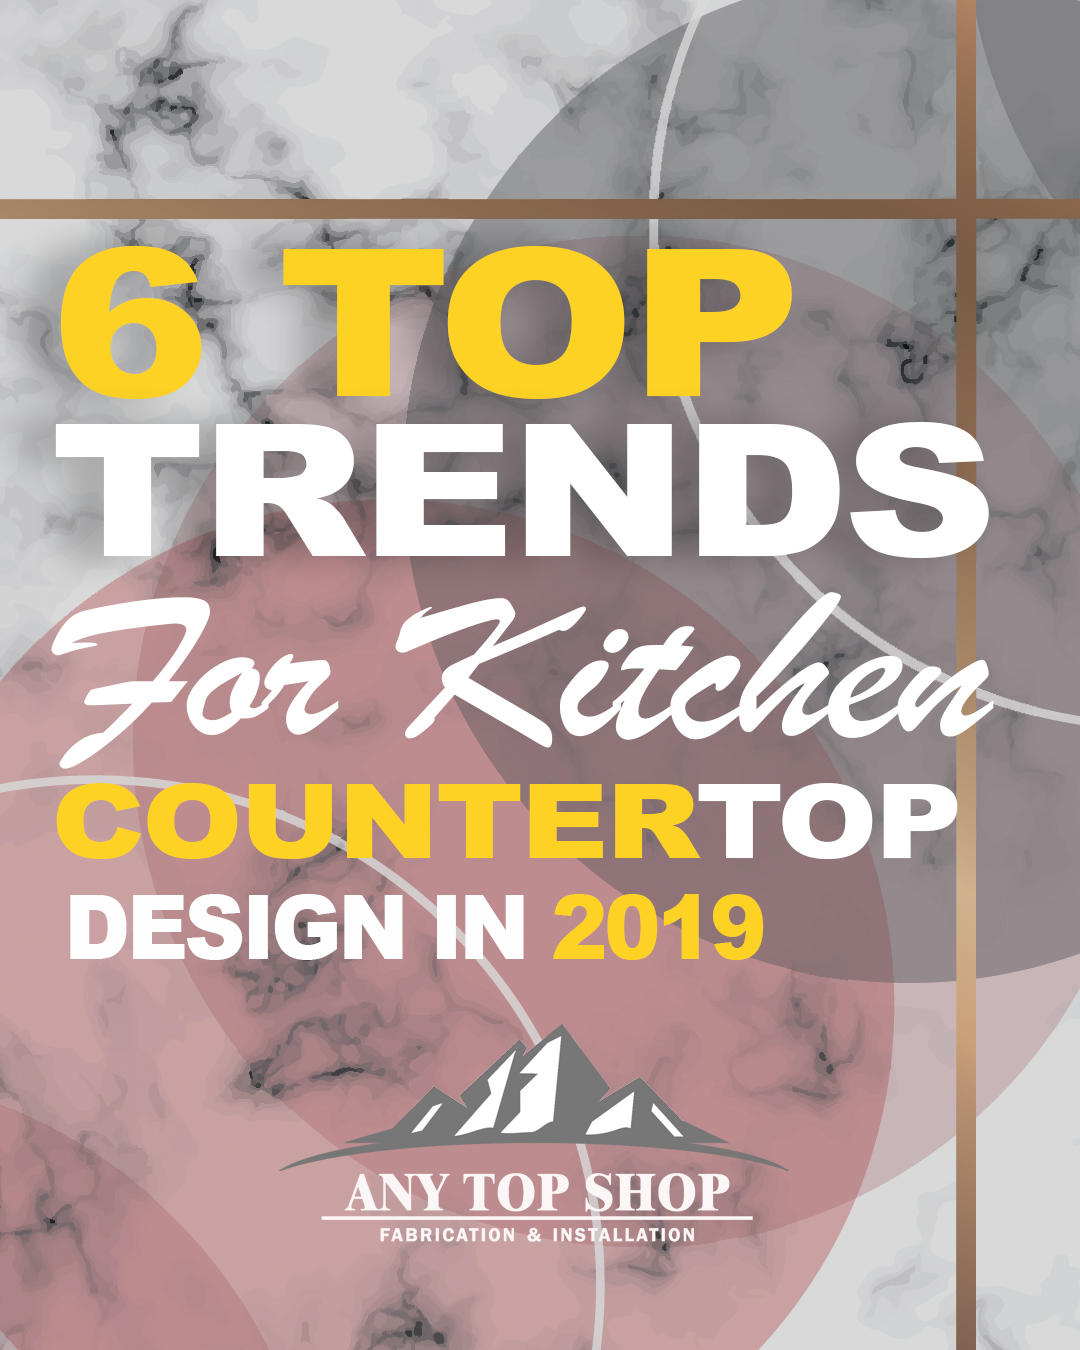 6 Top Trends For Kitchen Countertop Design In 2019